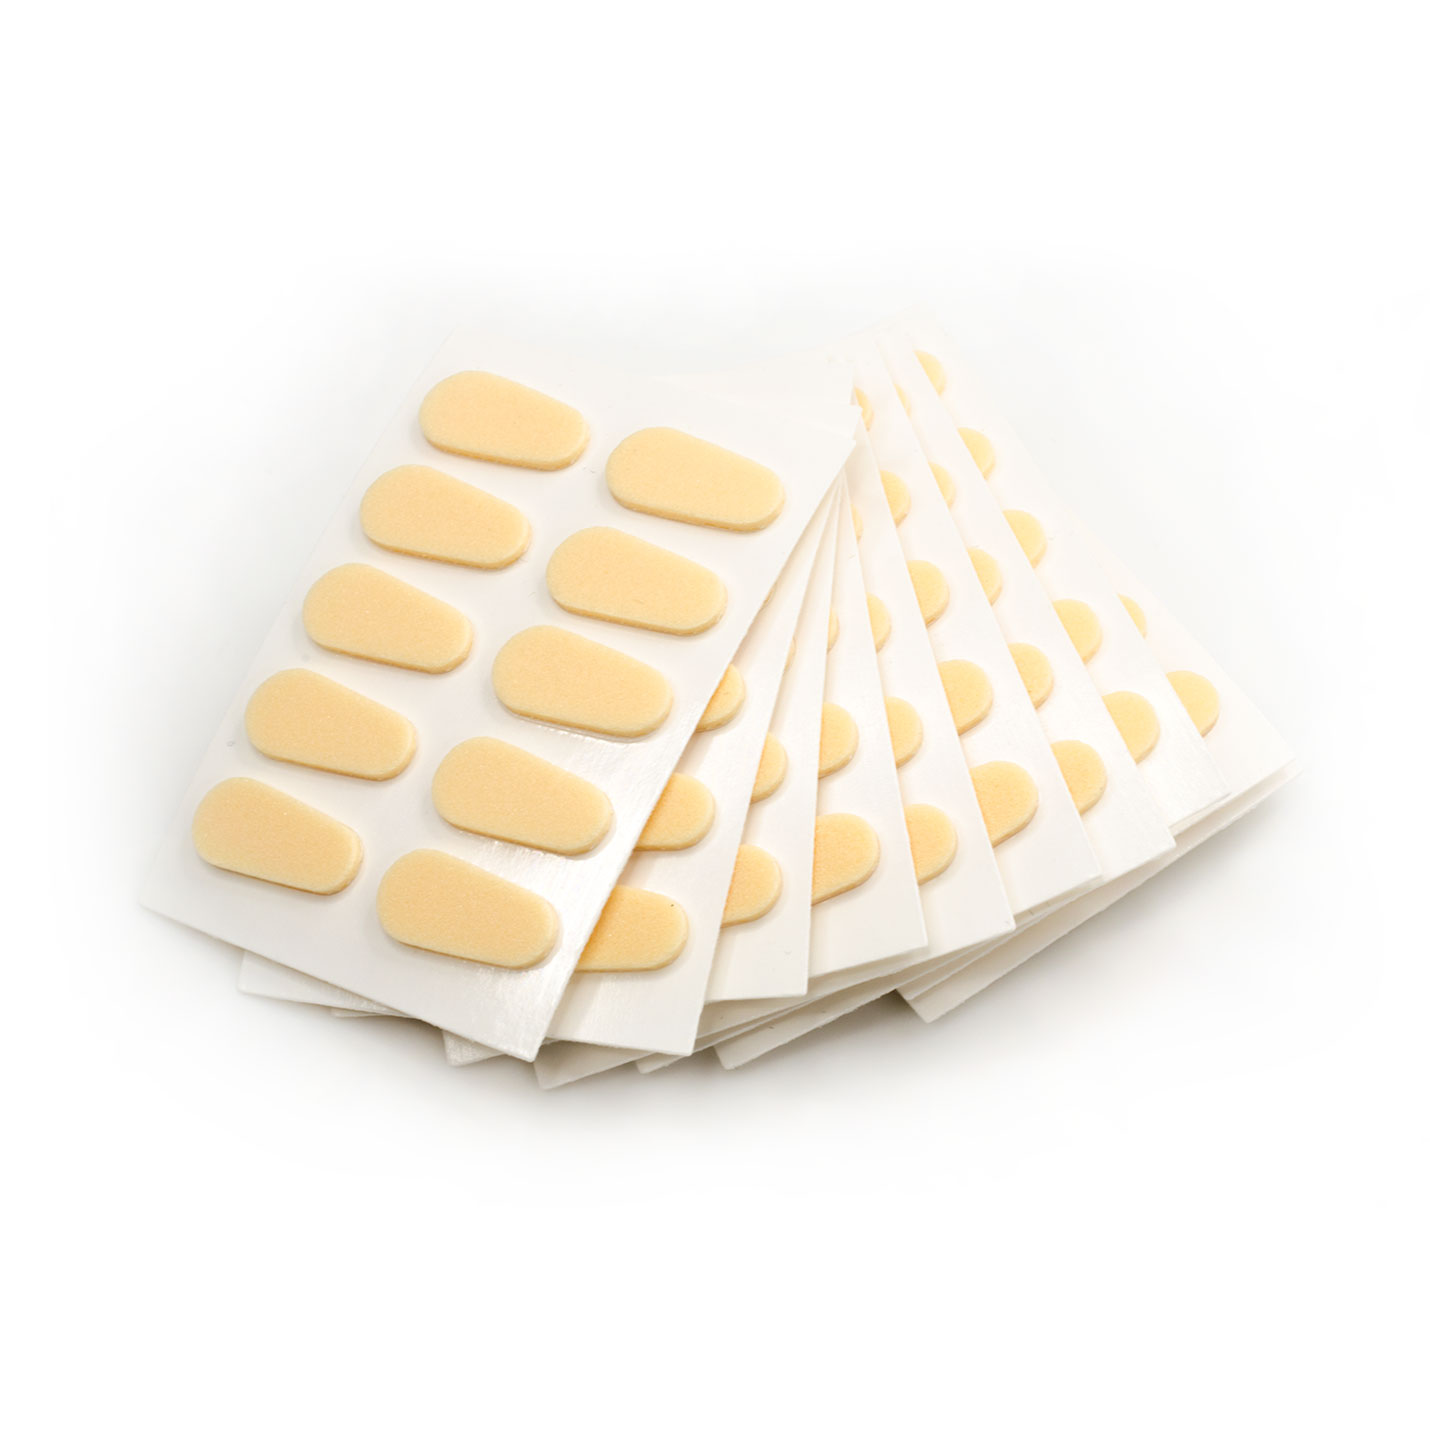 FMAD17 FOAM ADHESIVE NOSE PADS 17MM - OPTICAL PRODUCTS ONLINE